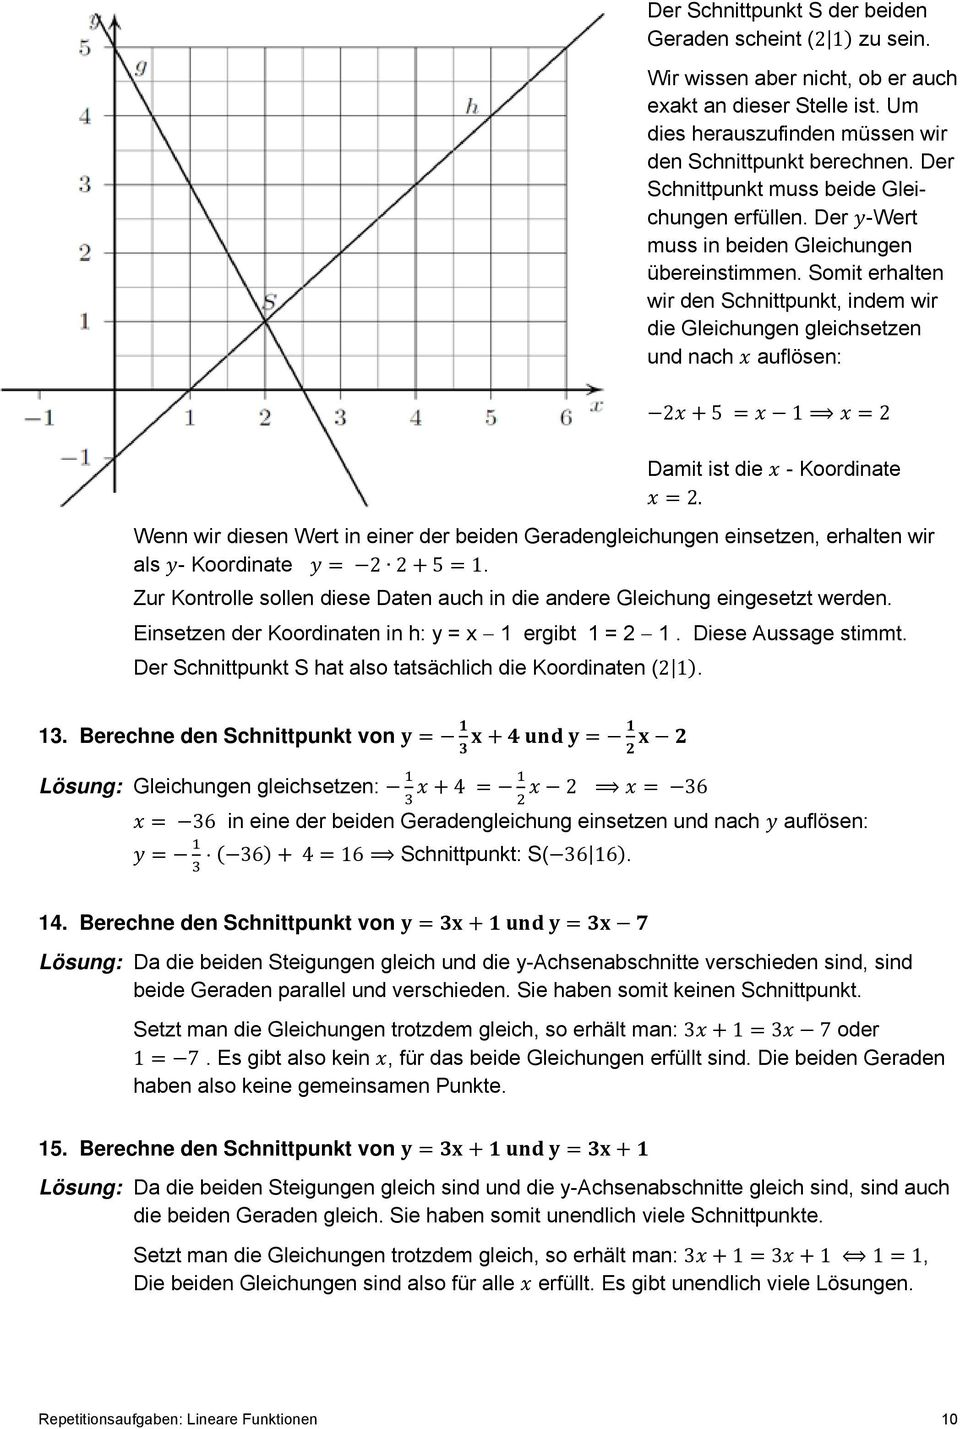 Repetitionsaufgaben: Lineare Funktionen - PDF